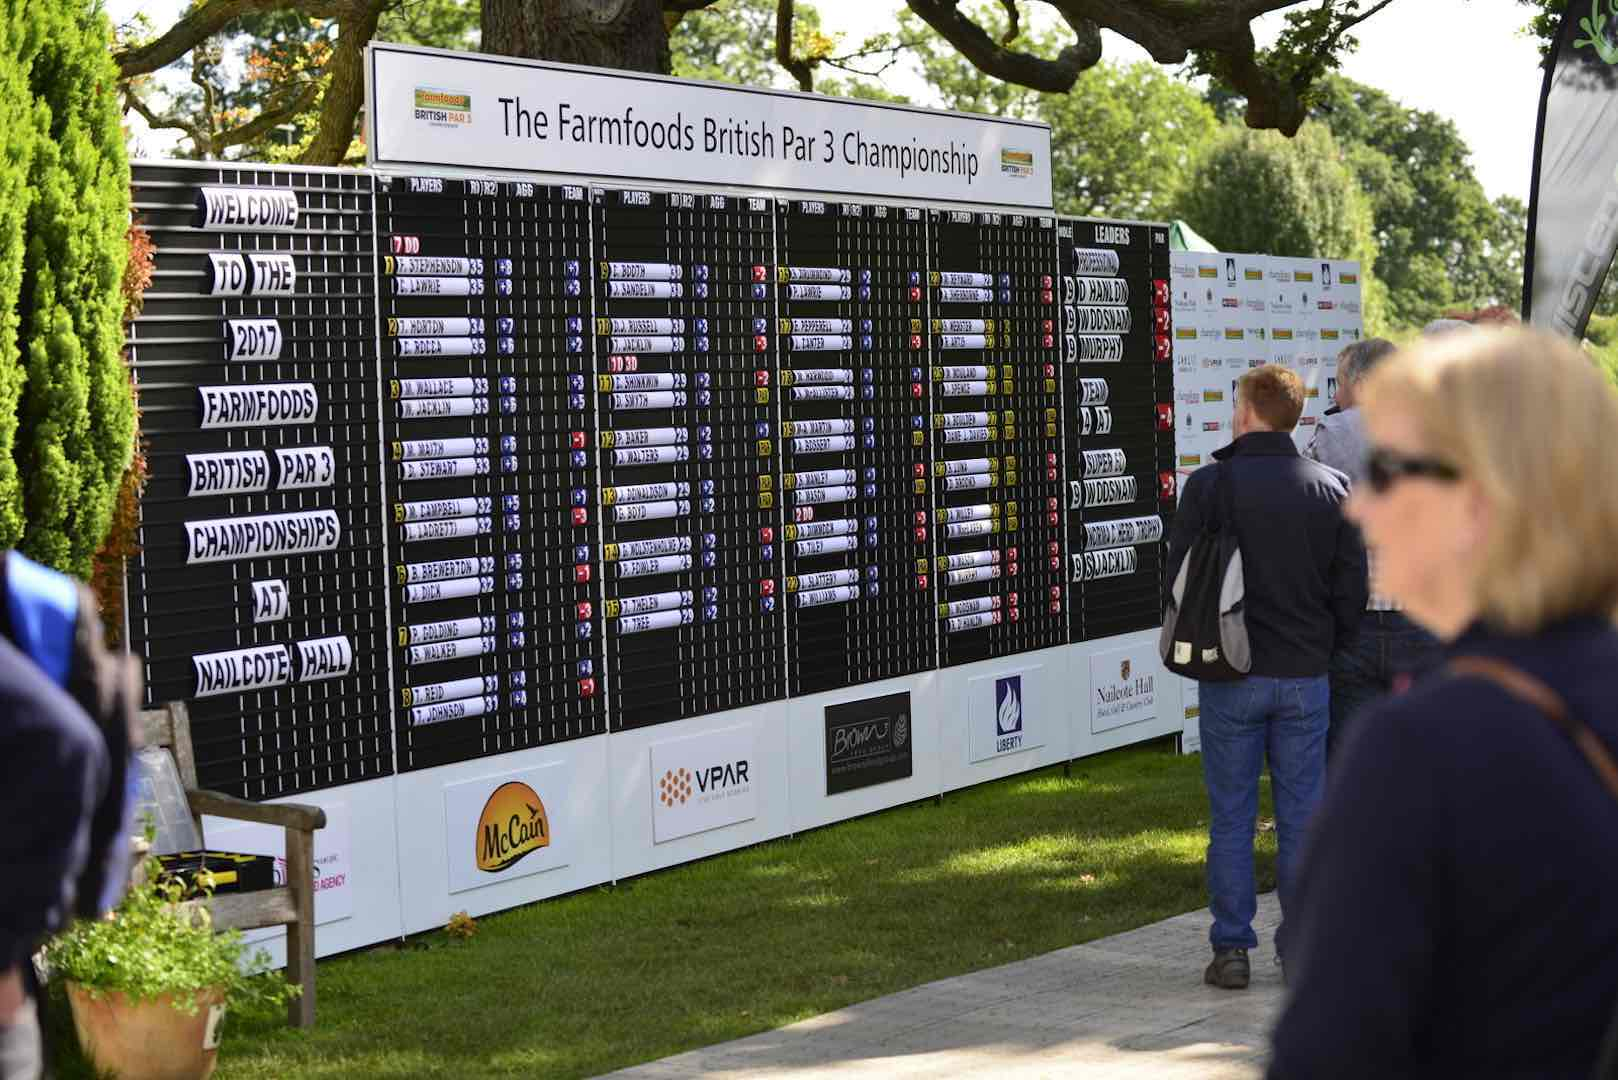 Farmfoods British Par 3 Championship to support next generation of golfing stars